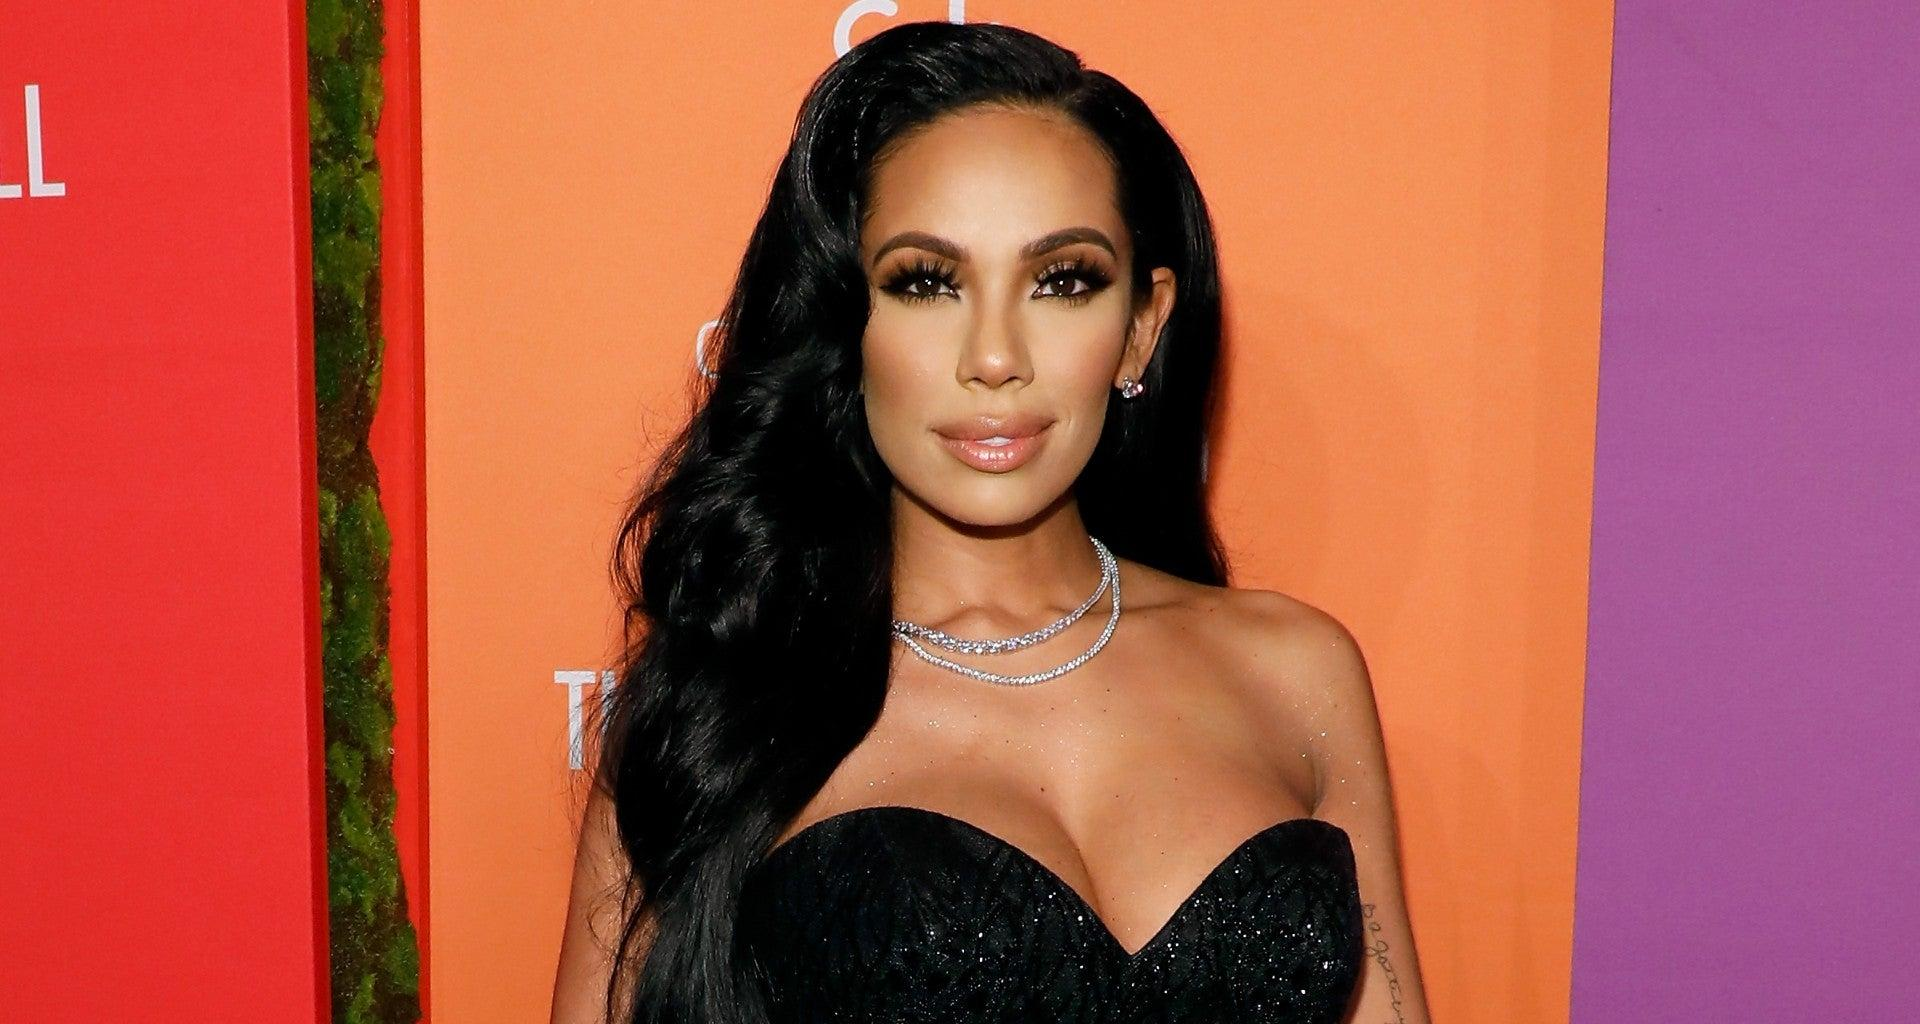 Erica Mena Offers Beauty Advice To Fans In This Video, But Receives Massive Backlash - Find Out Why In This Video